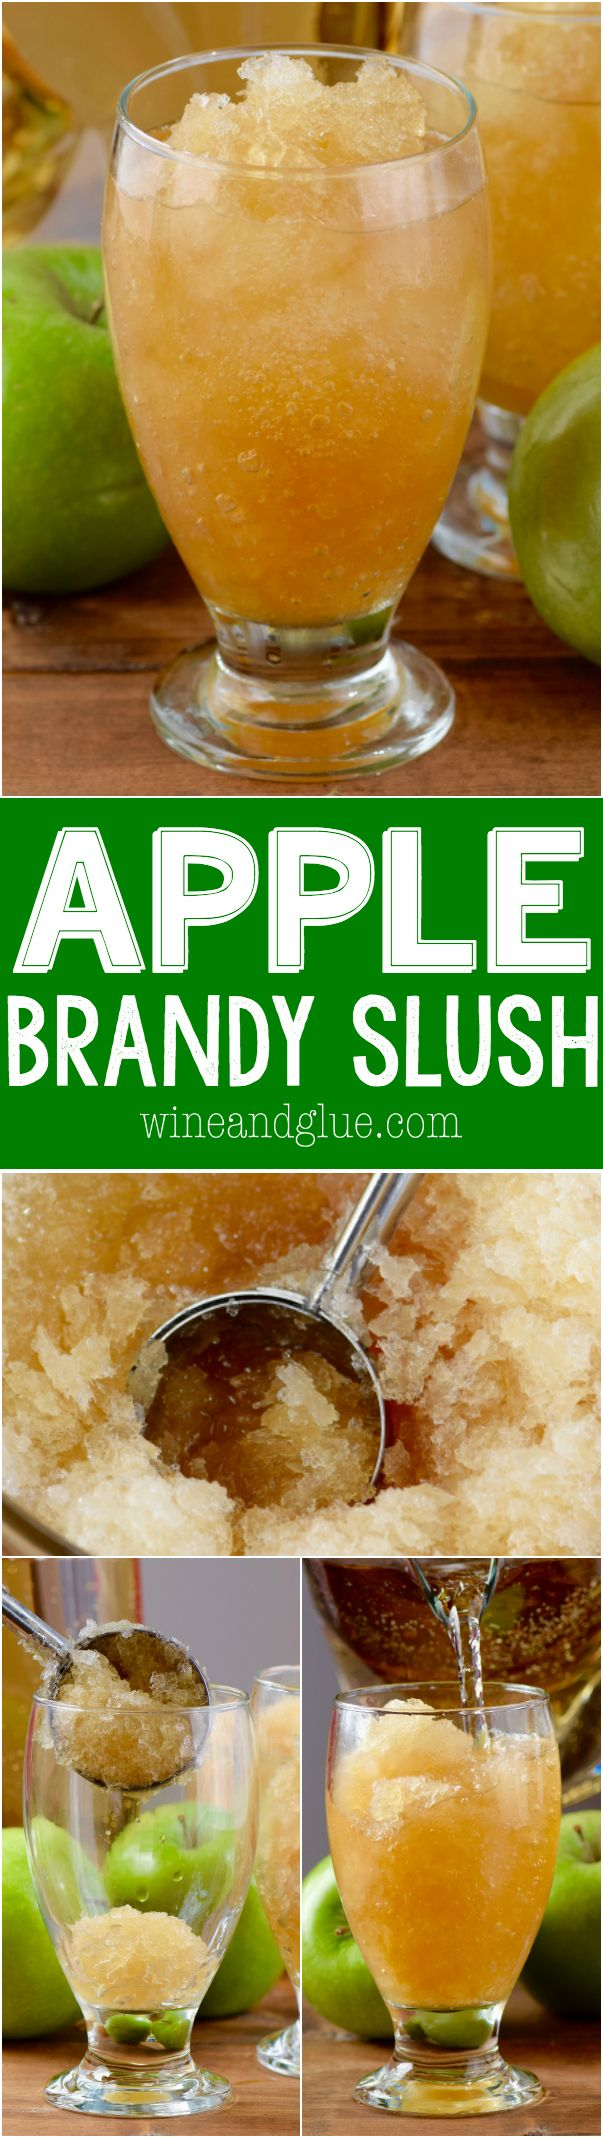 This Apple Brandy Slush is easy to make and serves a crowd! It's delicious and…